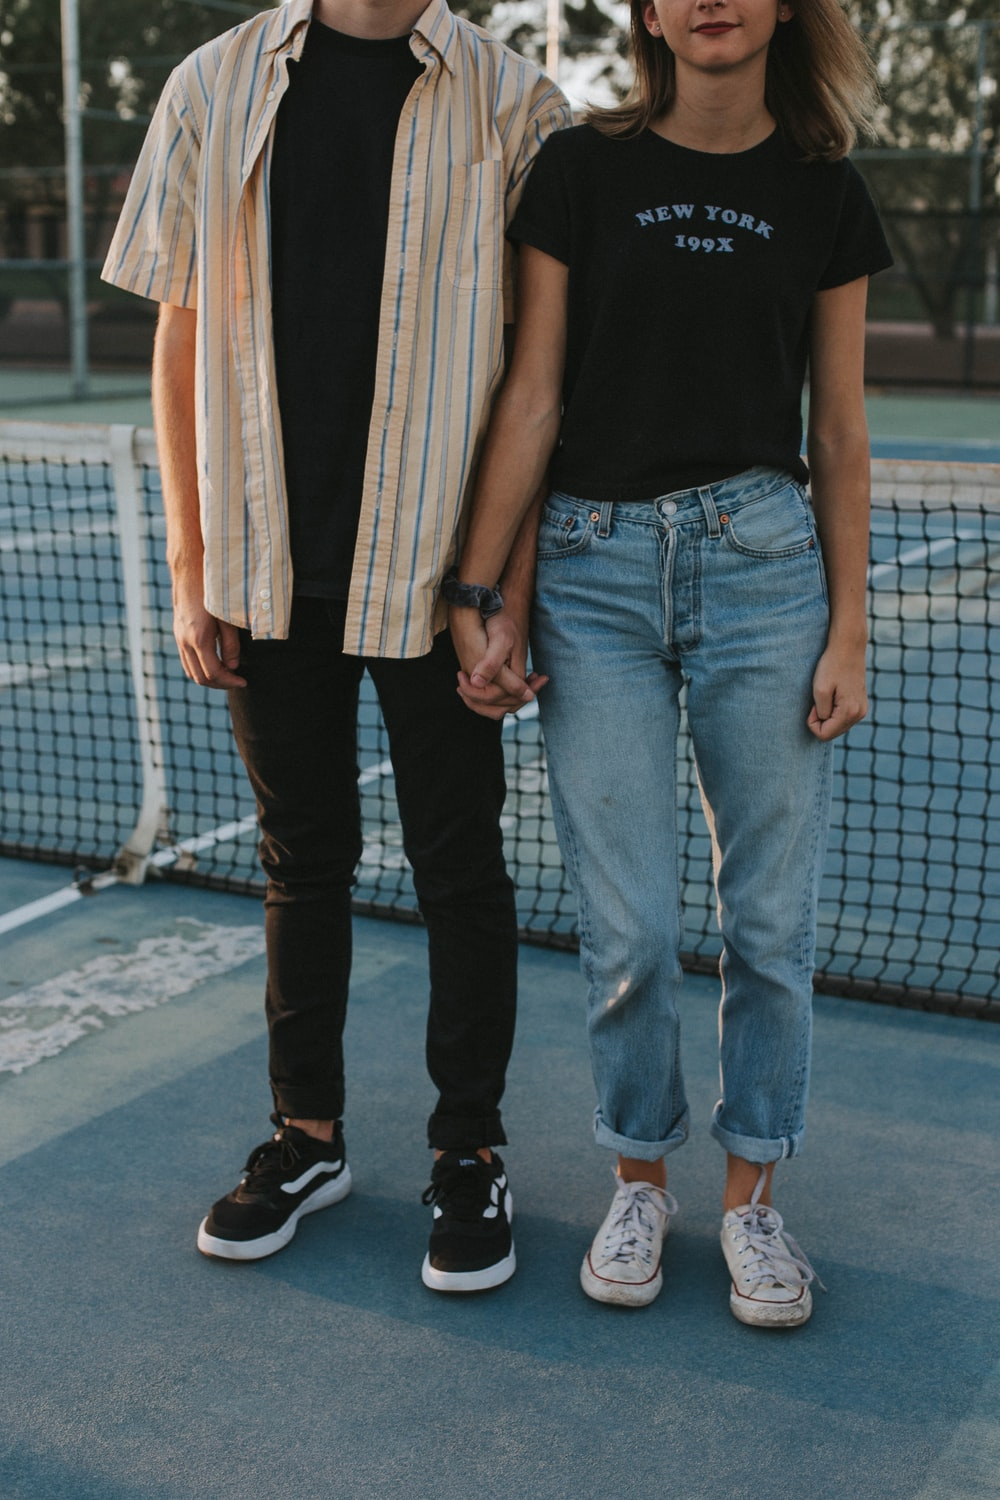 woman and man standing side by side while holding hands in tennis court